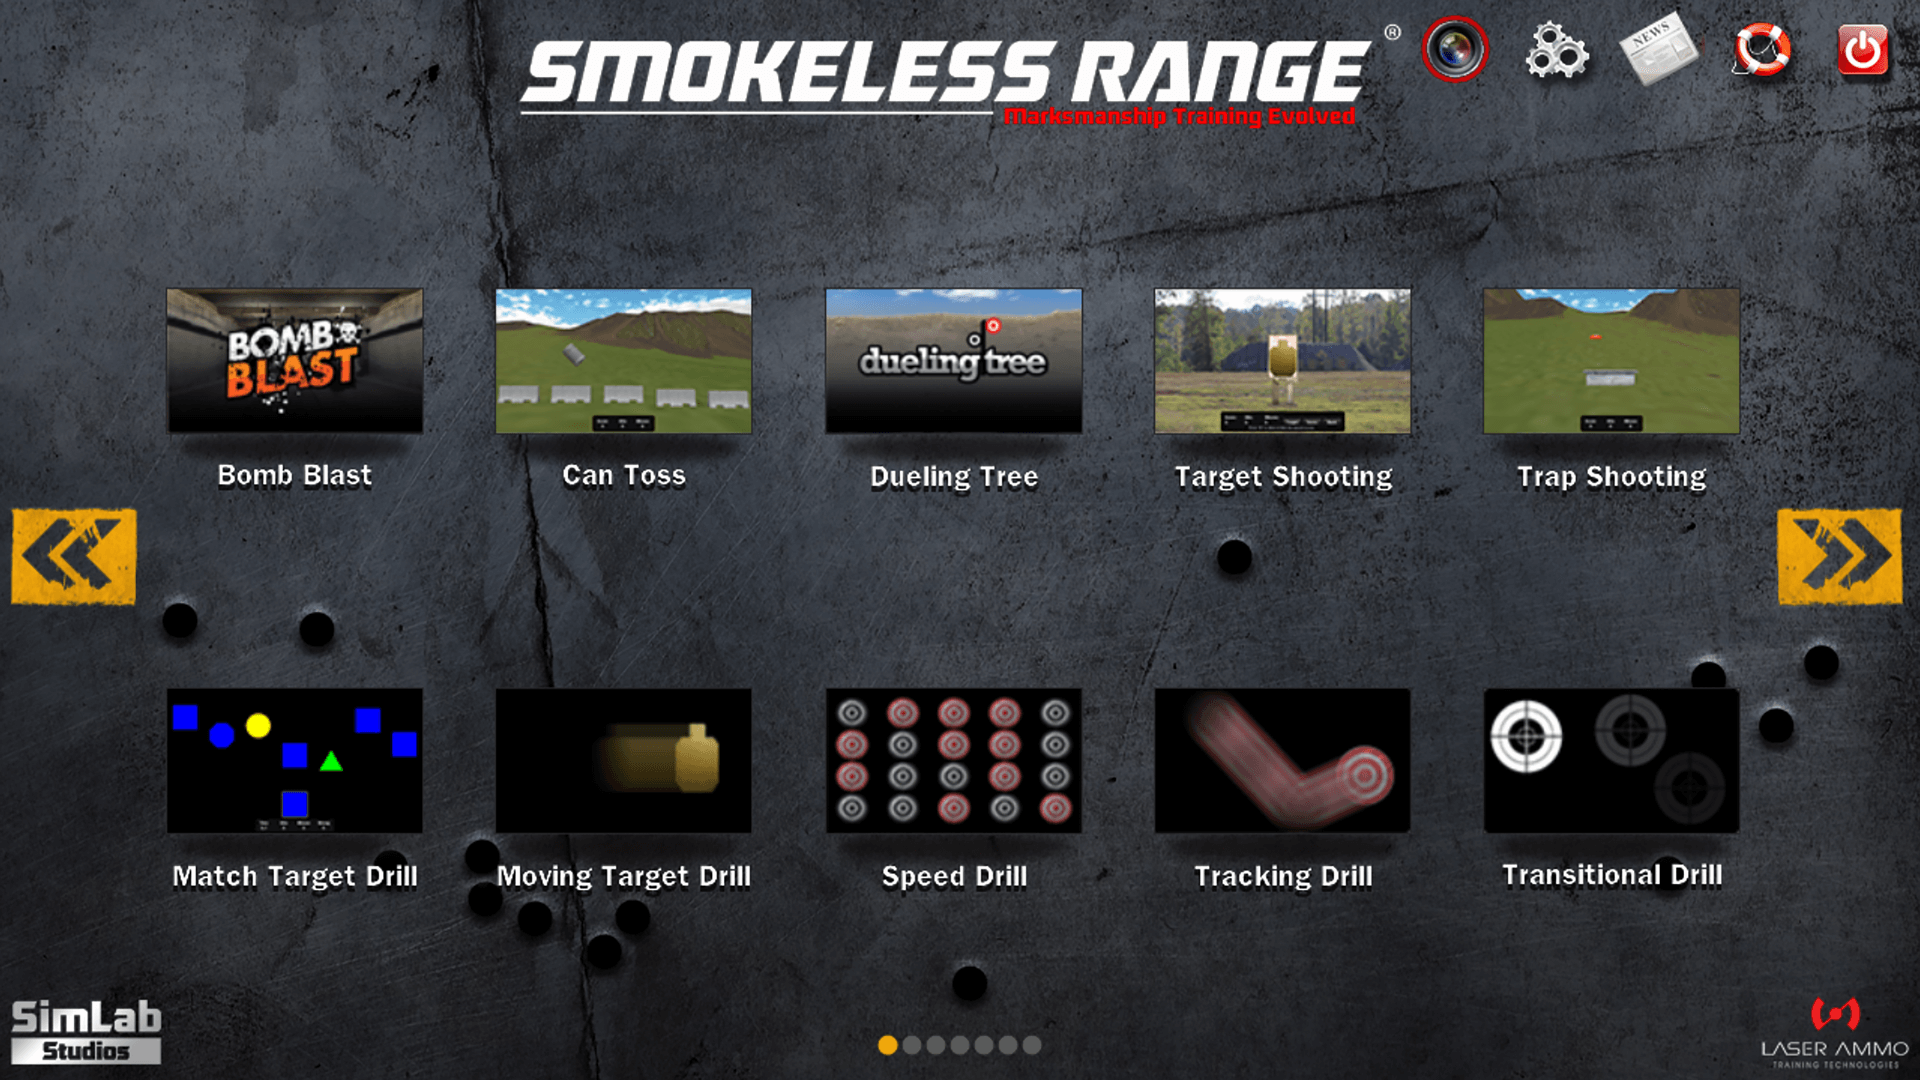 Smokeless Range - Home Simul. Software